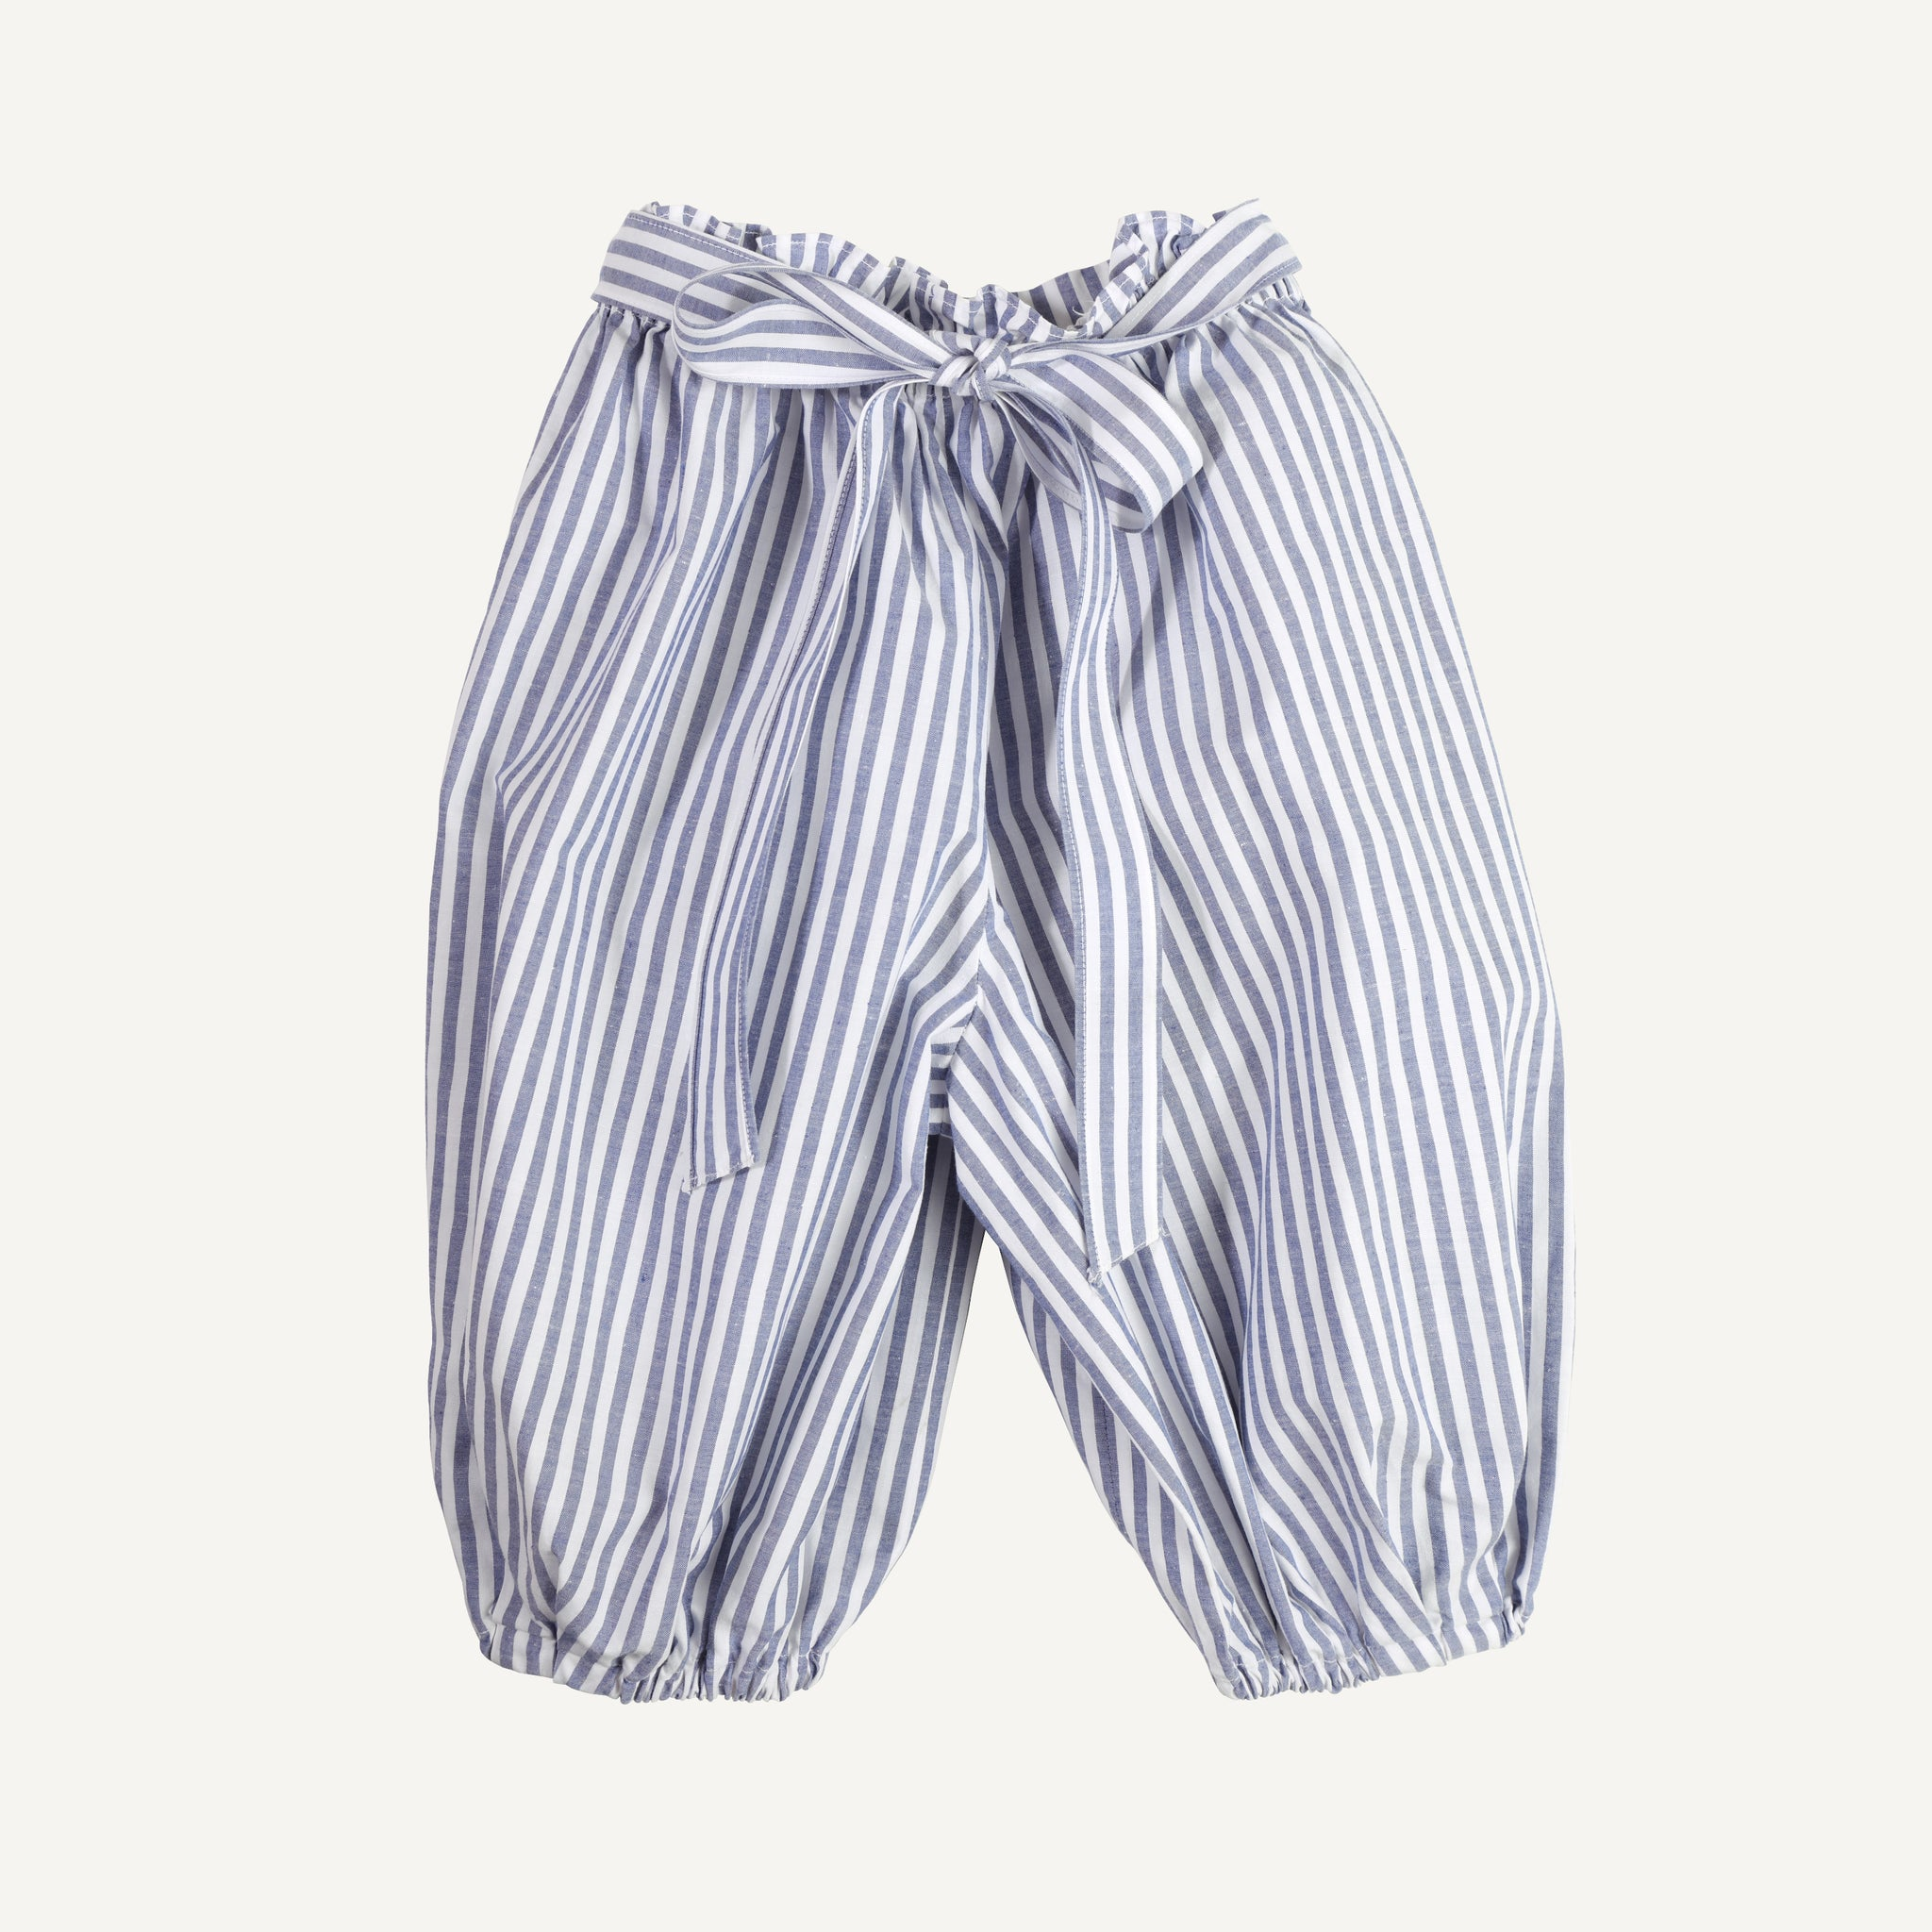 VINTAGE STRIPED BLOUSE + BALLOON PANT SET